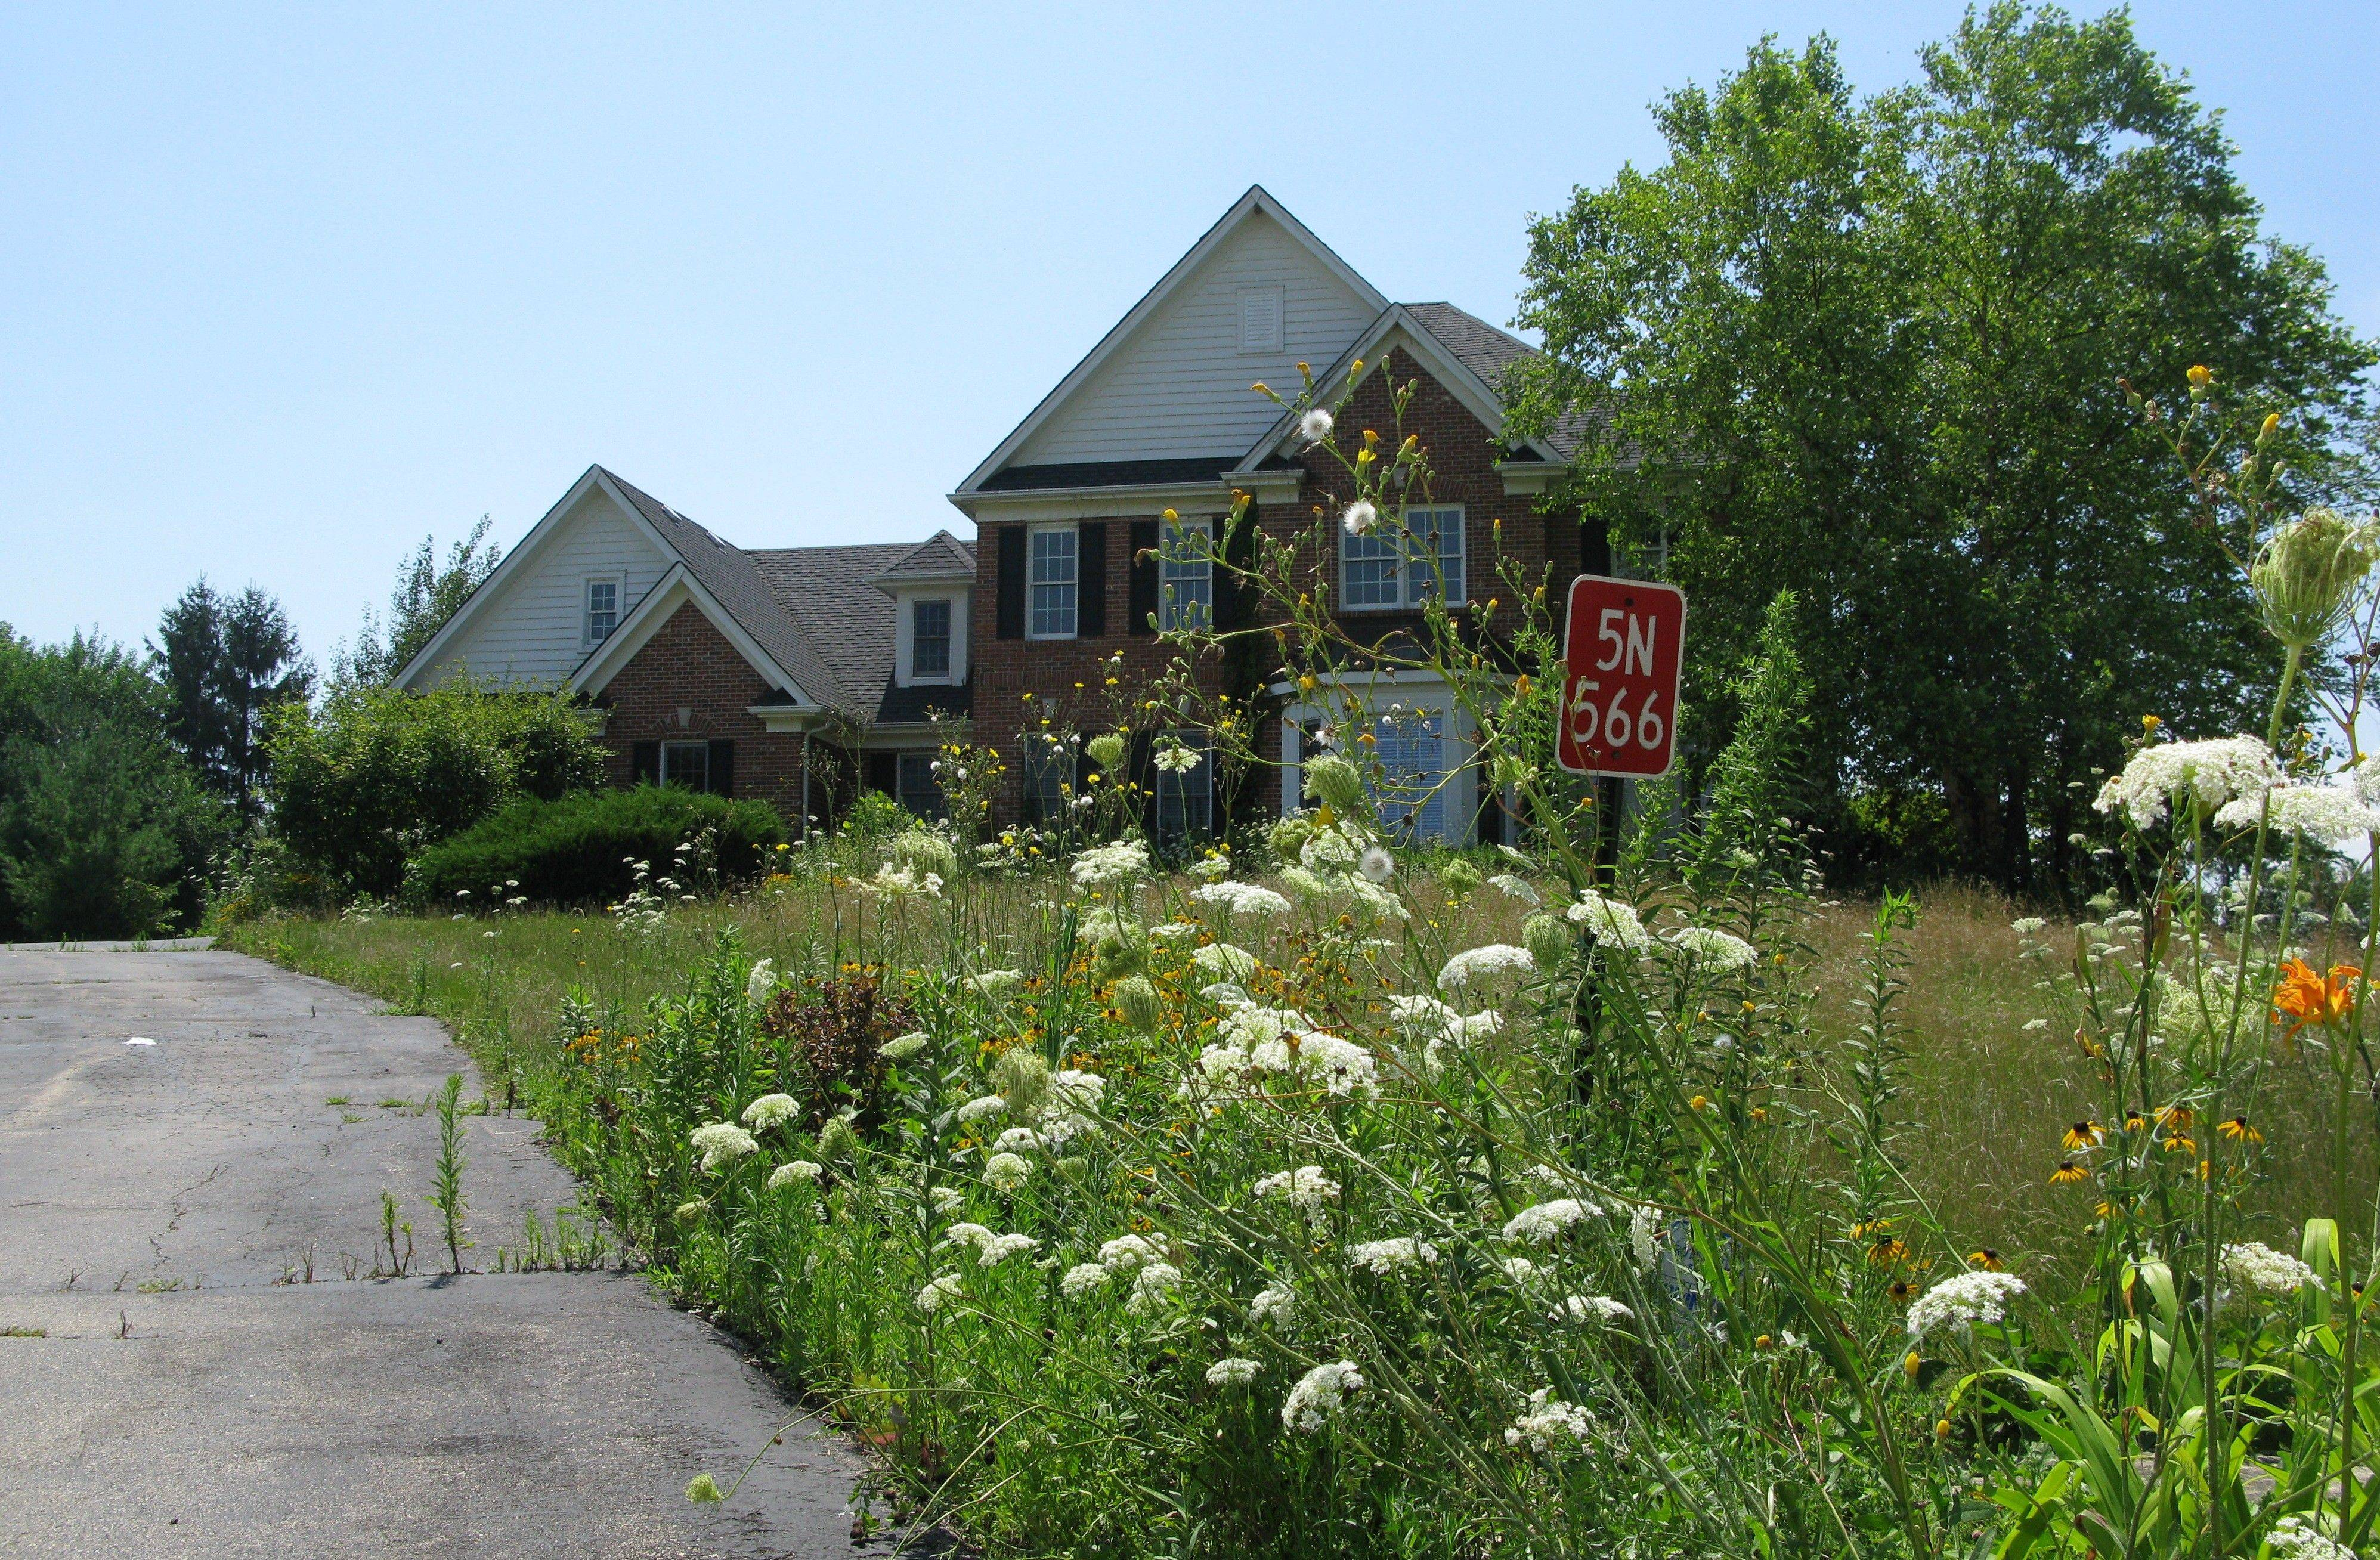 The vacant property in St. Charles is overgrown with foliage, bugs and varmints.